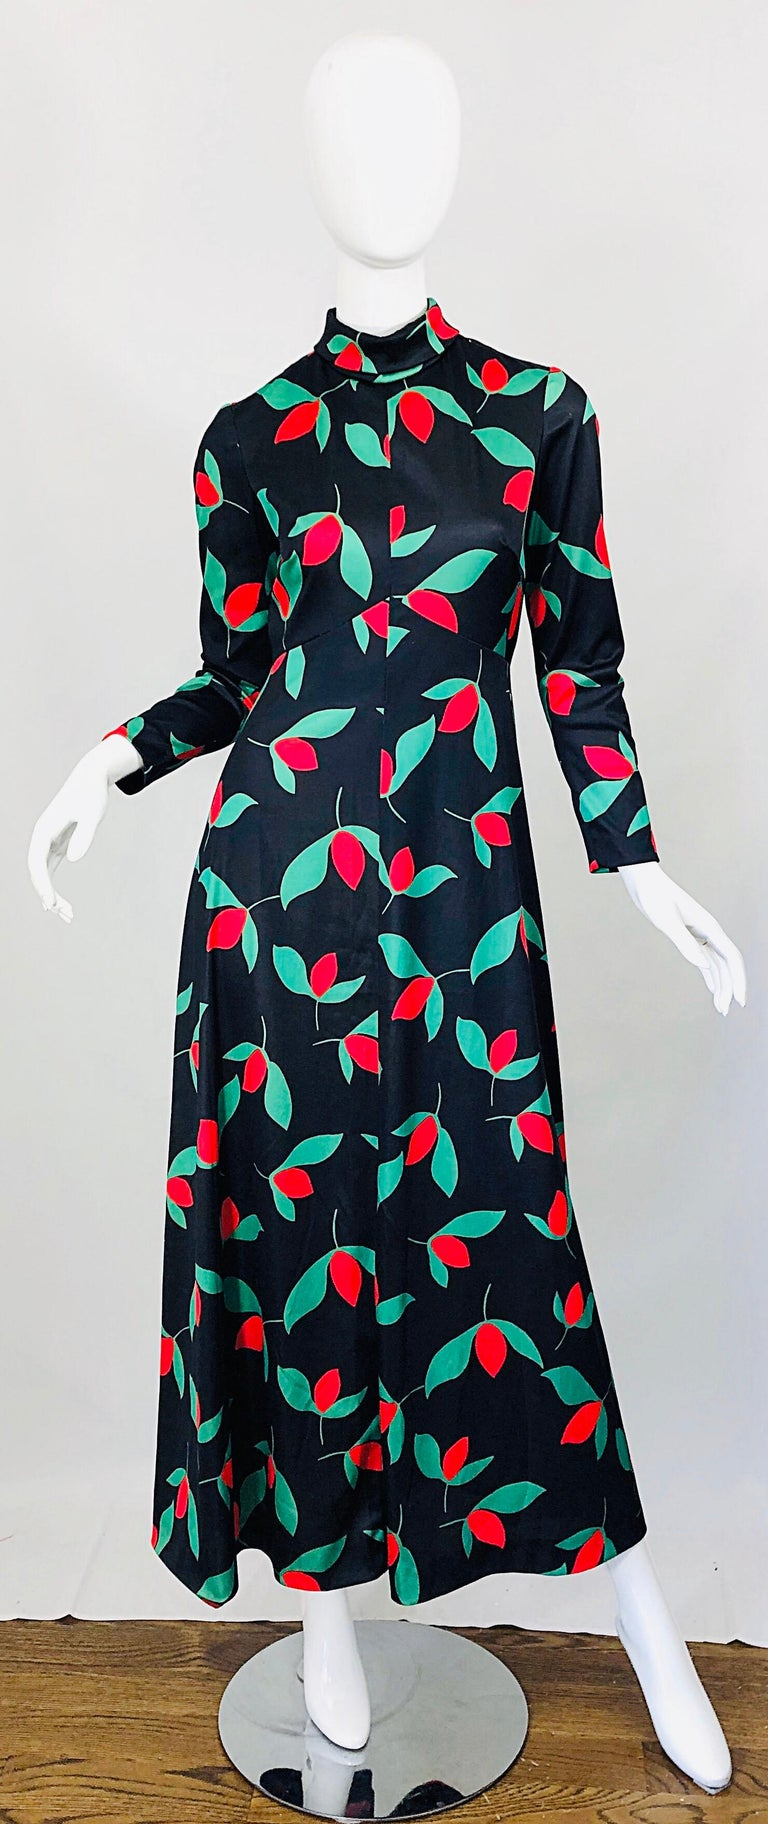 Beautiful and rare vintage 1970s EMILIO BORGHESE black, red and green tulip print long sleeve maxi dress ! Features a sleek tailored bodice with a flattering high neck. Forgiving skirt can fit an array of hip sizes. Hidden zipper up the back with